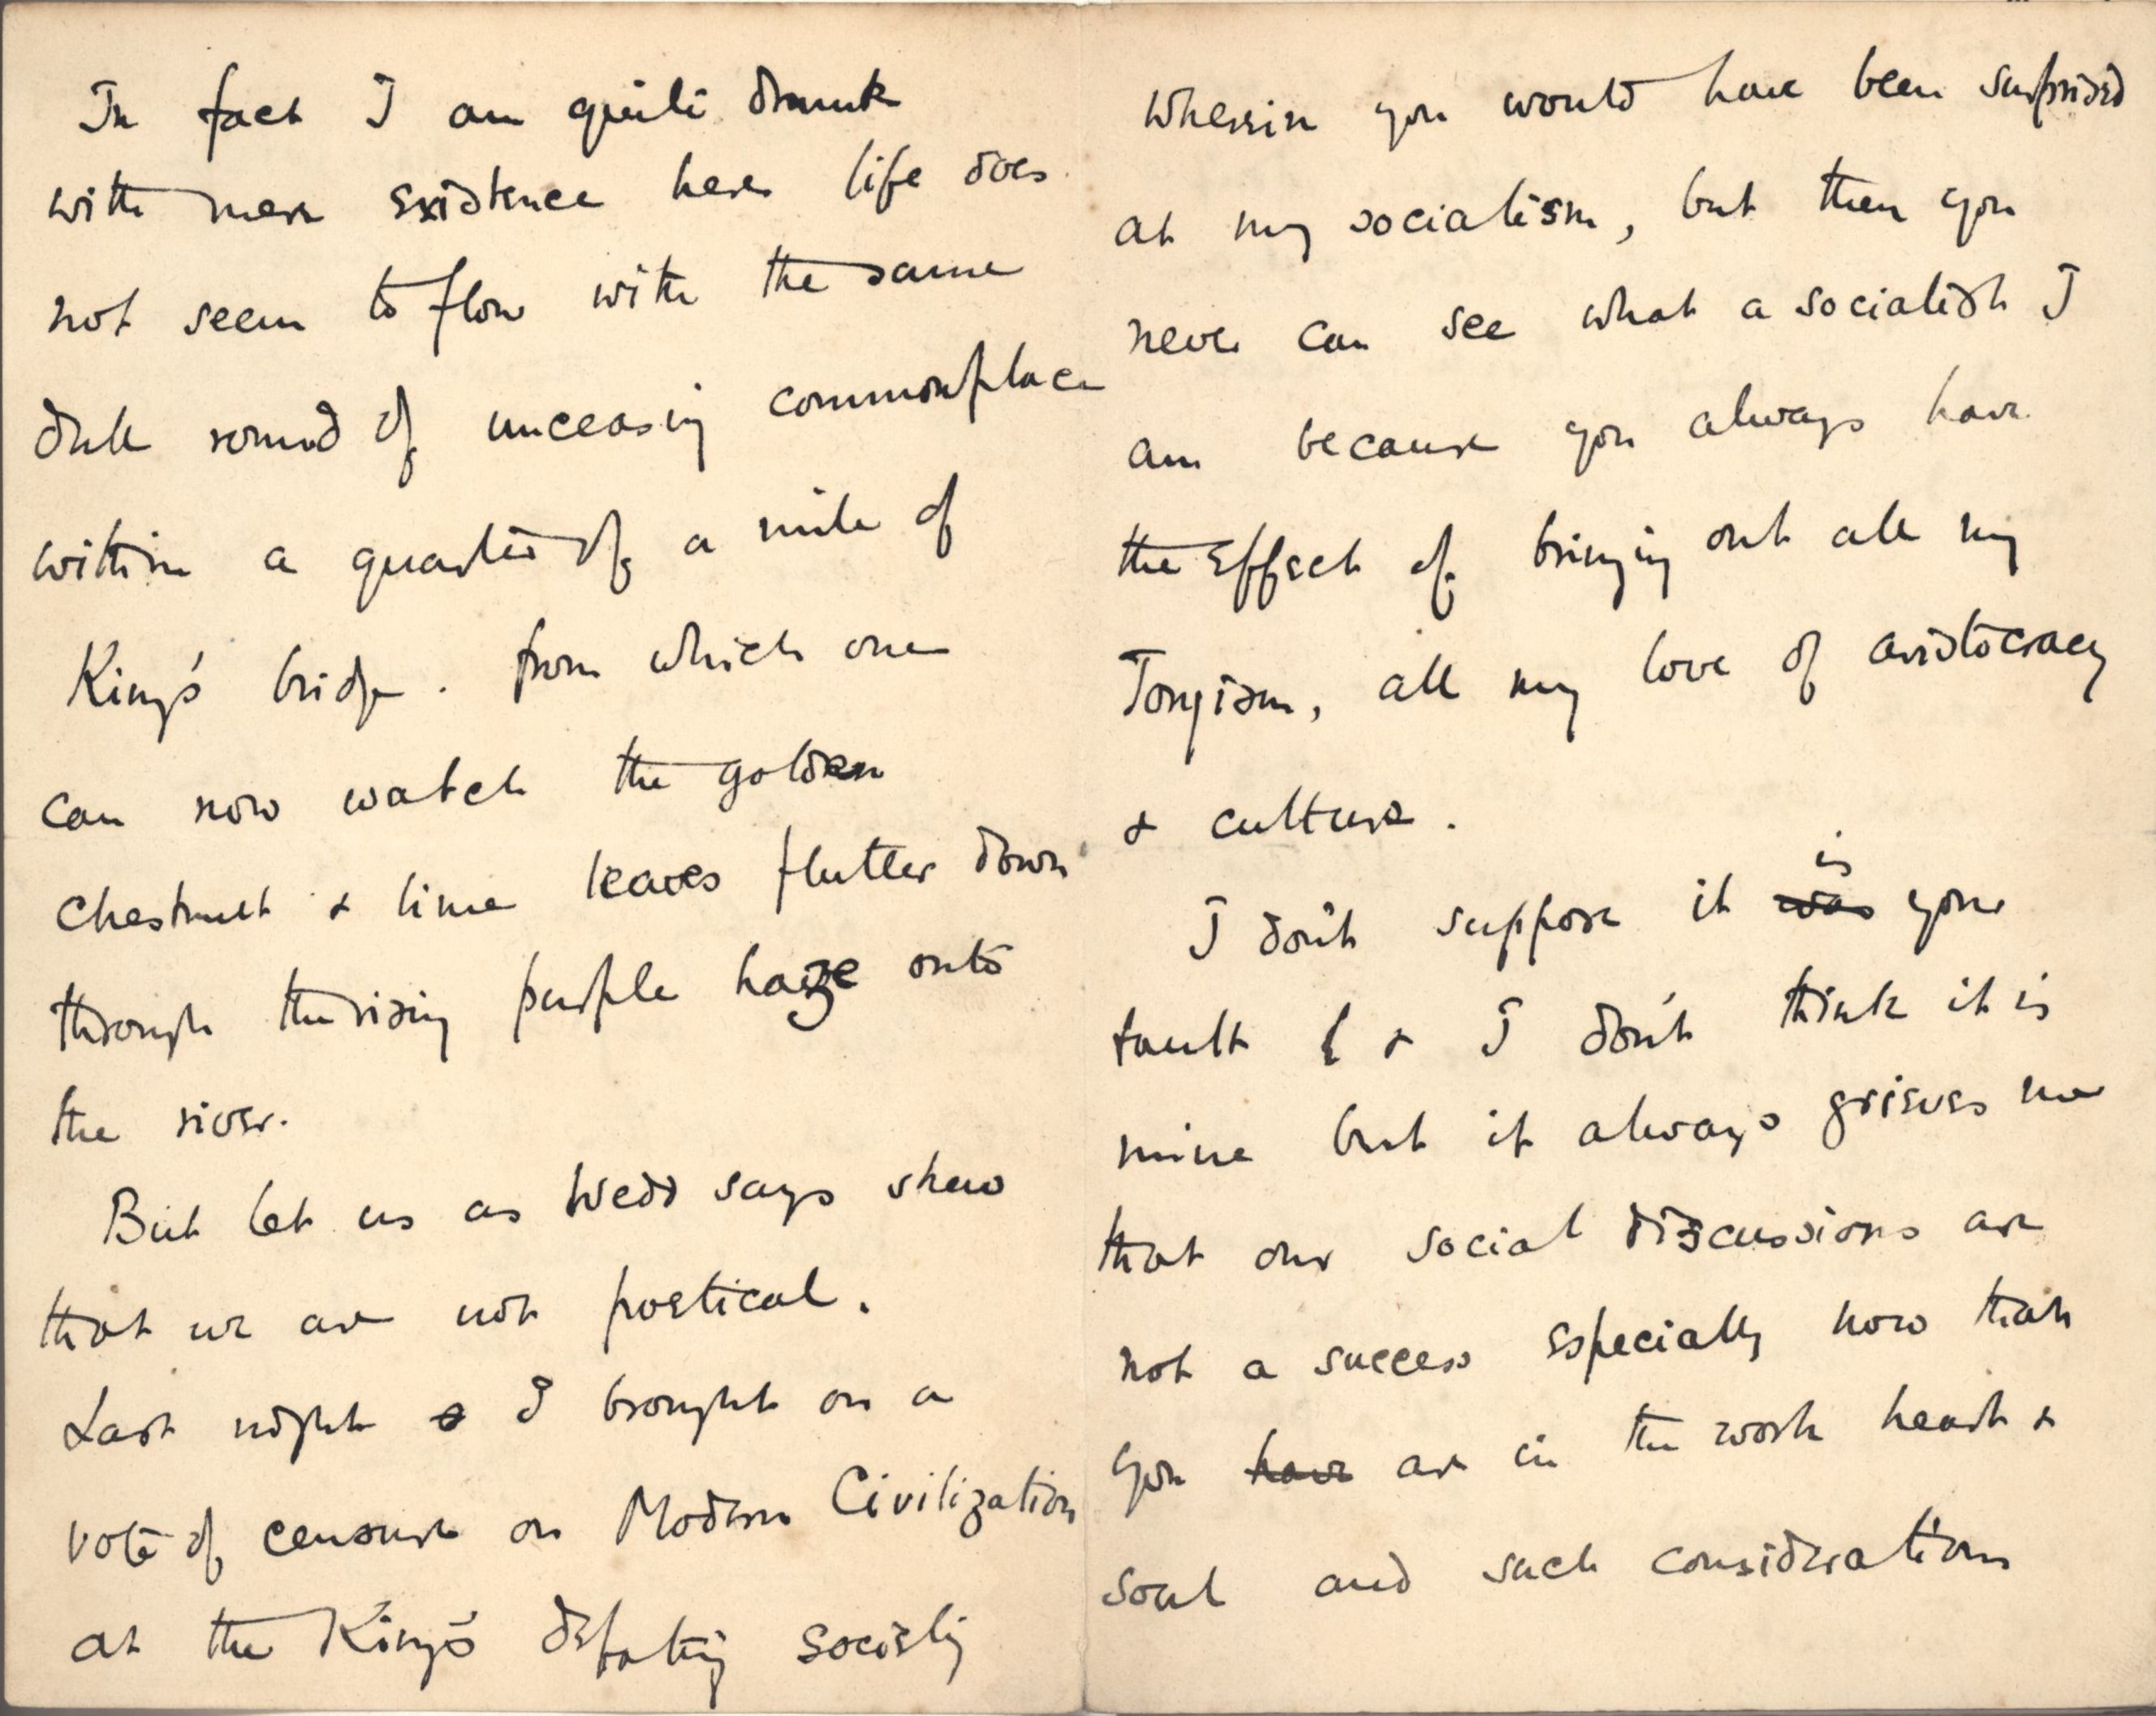 Part of a letter from Roger Fry to Ashbee, 22 October 1887, concerning socialism. [CRA/1/3, 152]